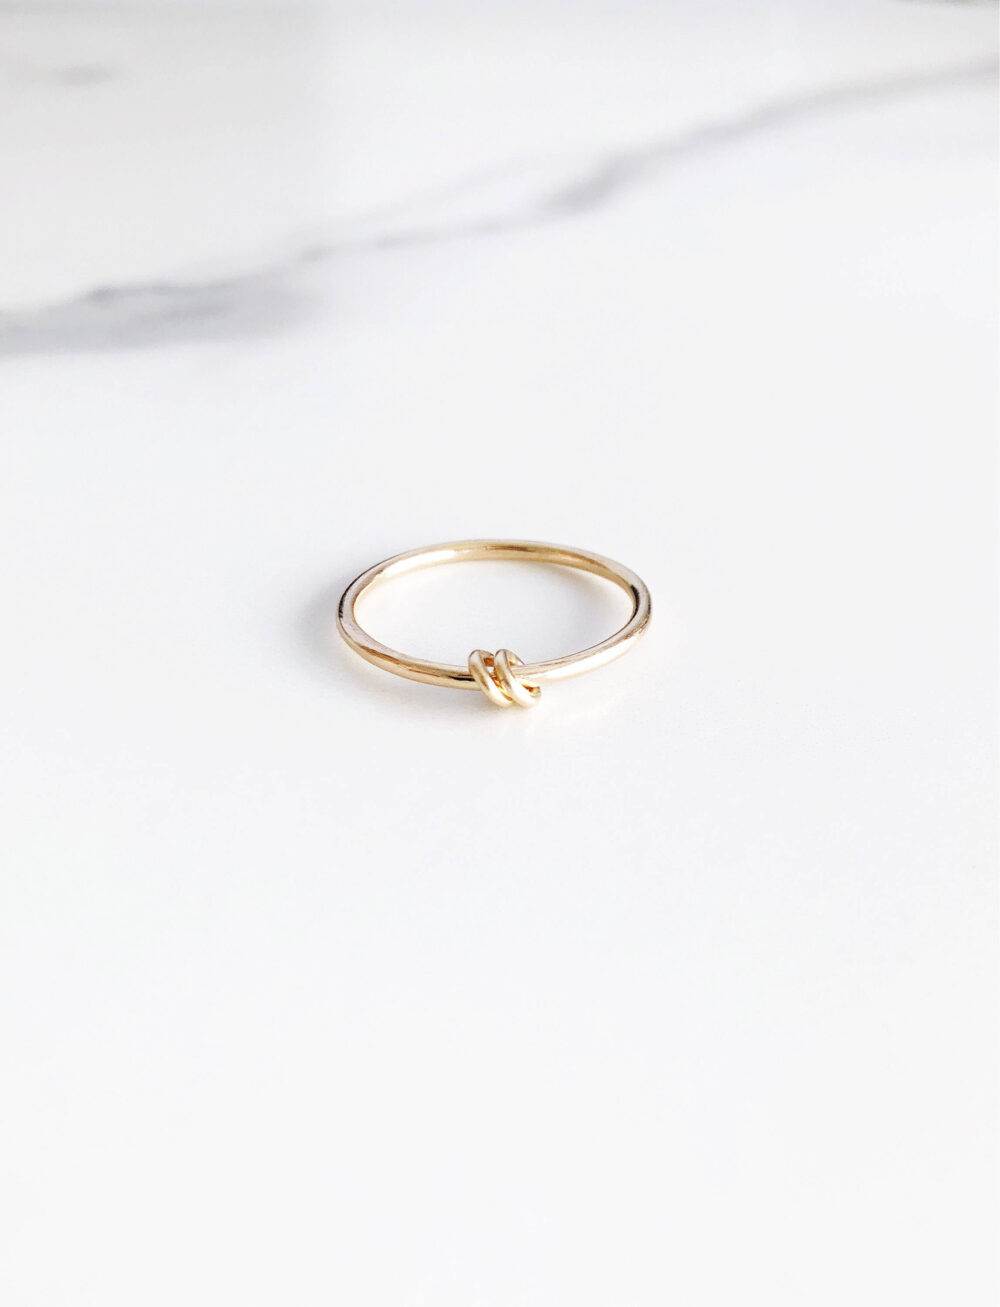 Nahiku Mother's Ring - Gold Ring, Thin Ring, Stack Ring, Stacking Ring, New Mom Gift, Gold Knot Ring, Gift For Mom, Smooth Ring, Mom Jewelry